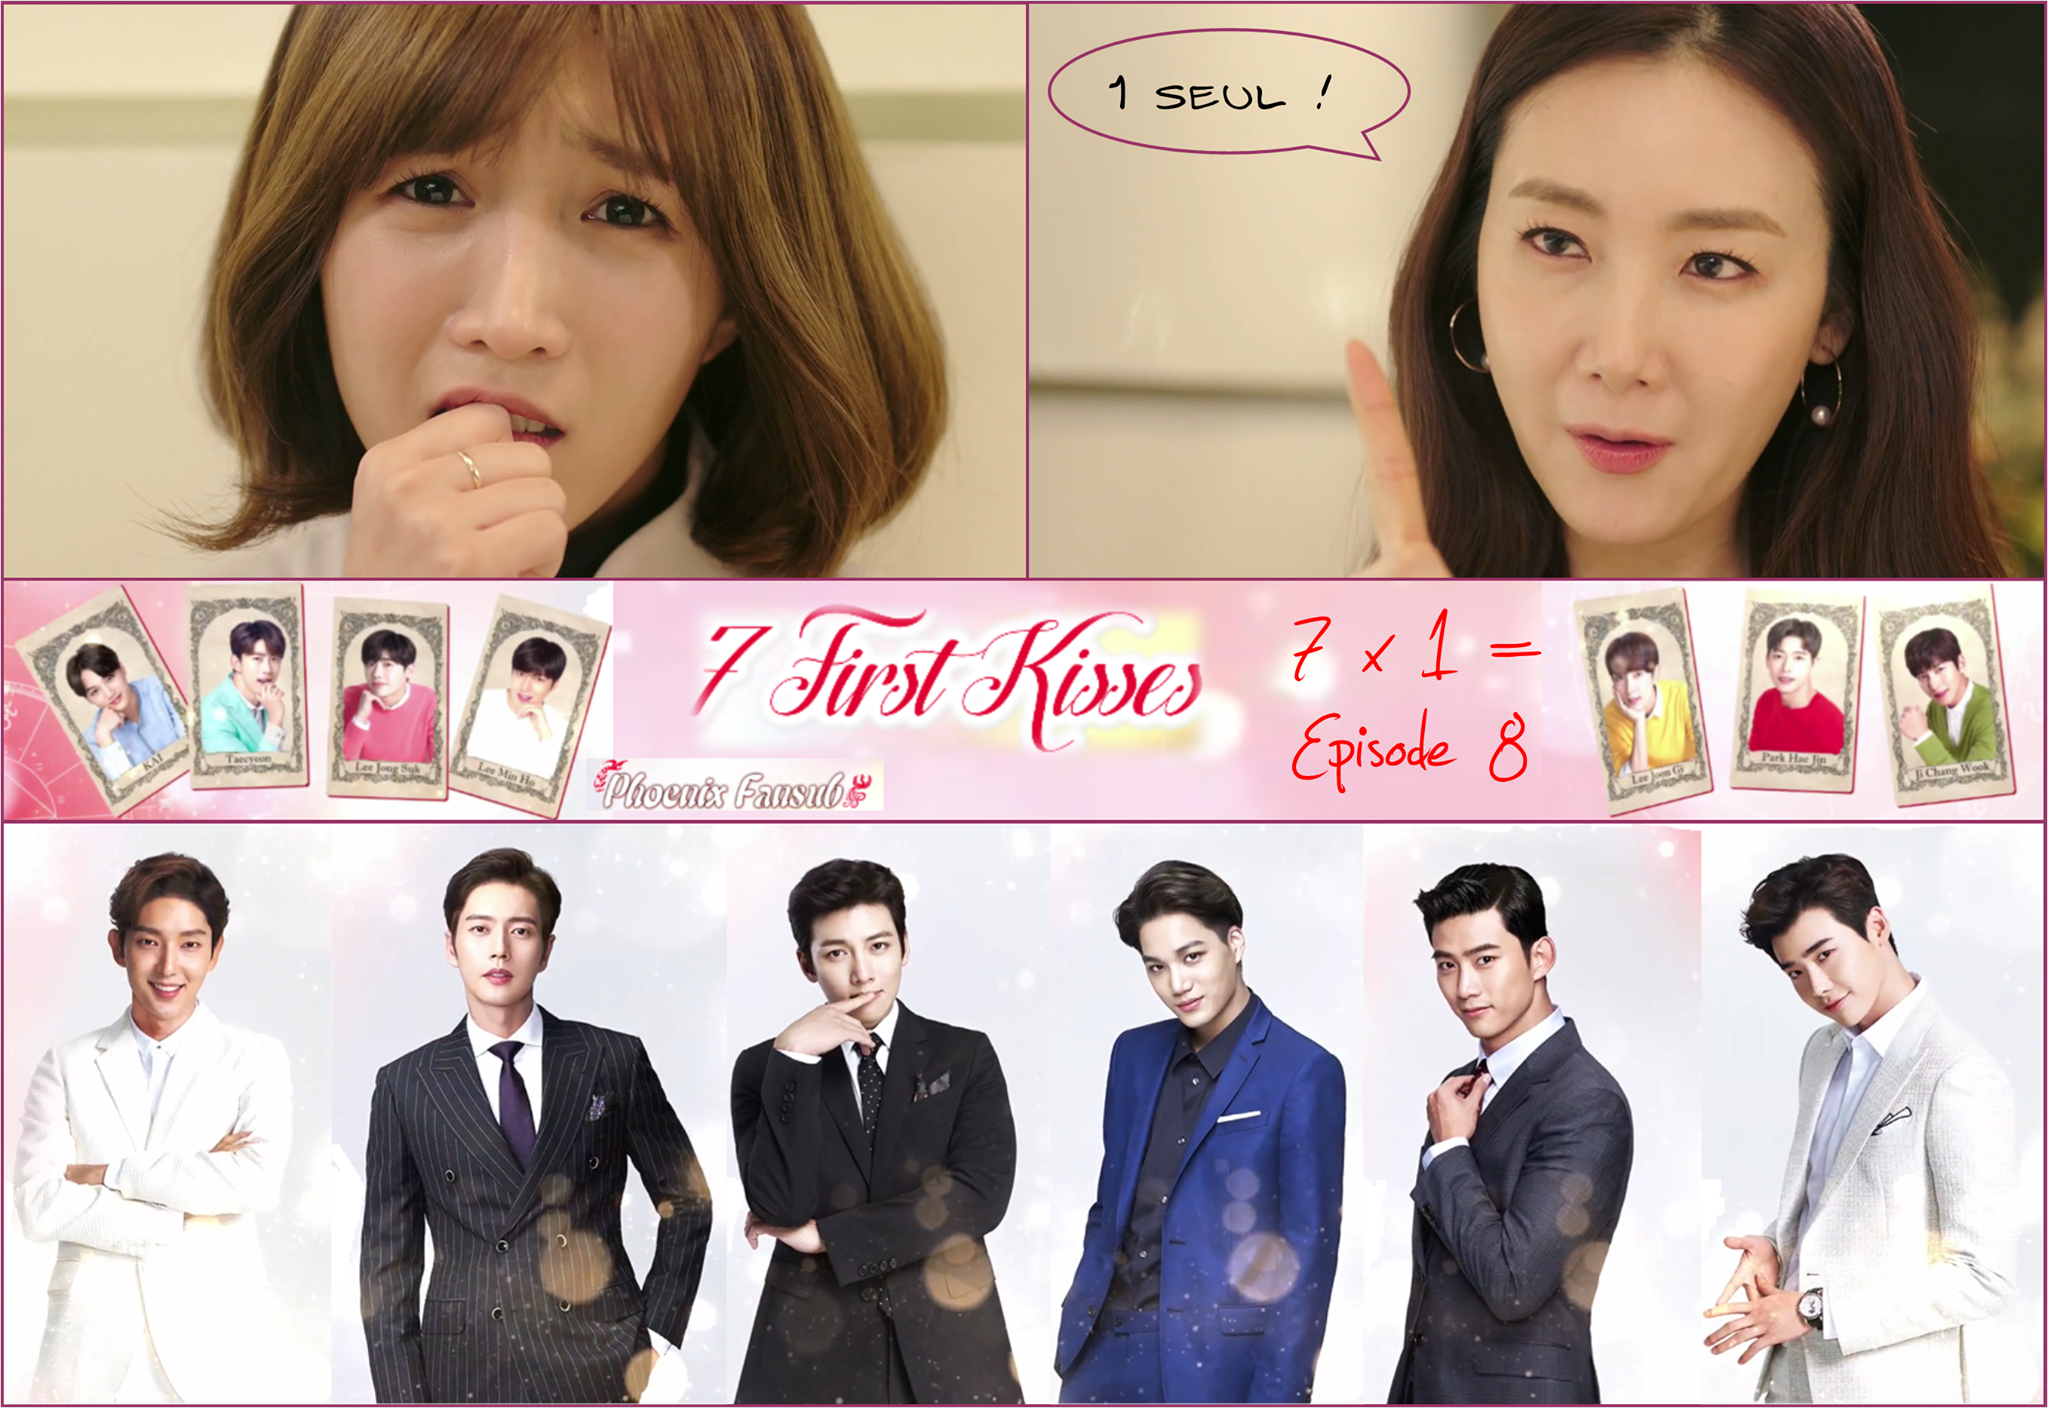 Seven First Kisses / First Kiss For The Seventh Time - Épisode 08 - VOSTFR